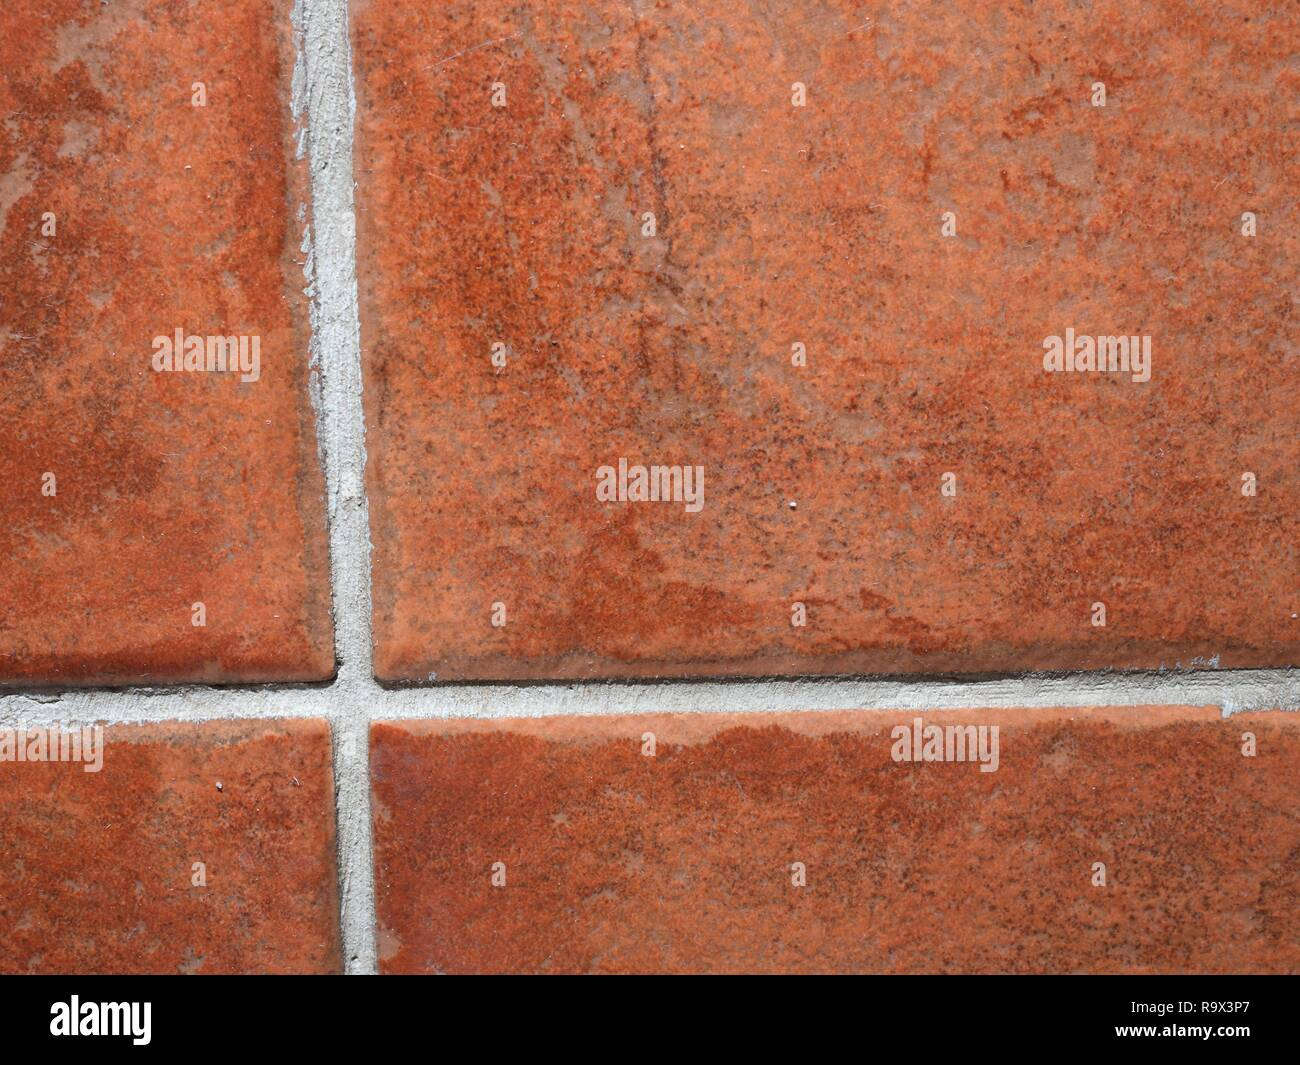 Horizontal rectangular tiled wall in bathroom in detail.  Tiles red and white chinks Stock Photo